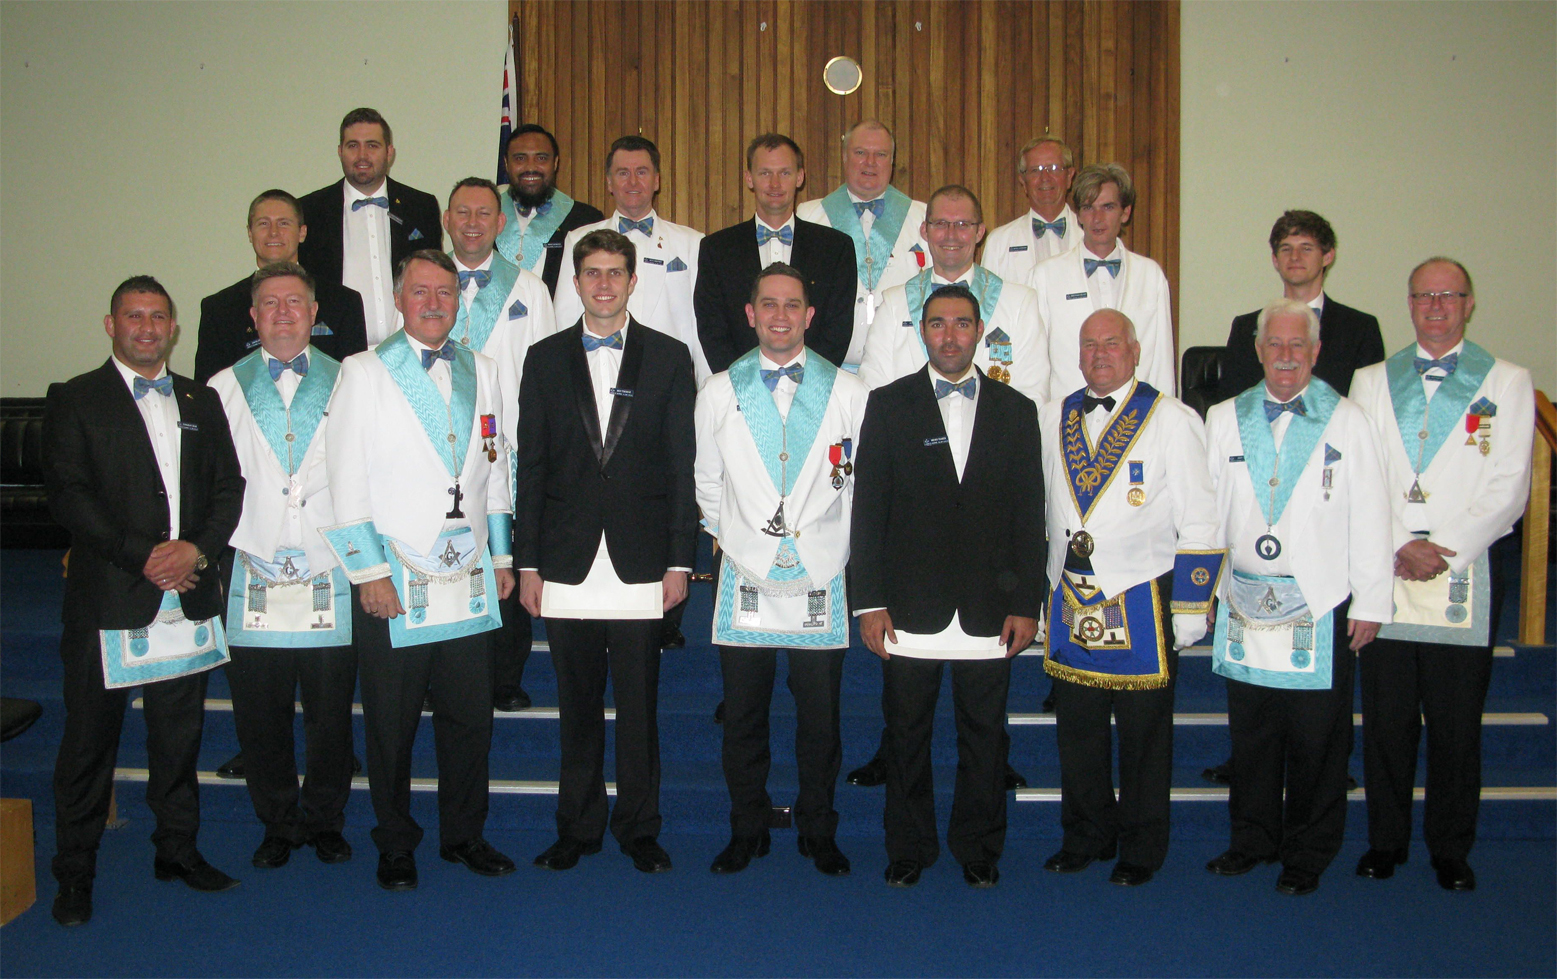 double first degree inspirenow double first degree lodge st georgedouble first degree